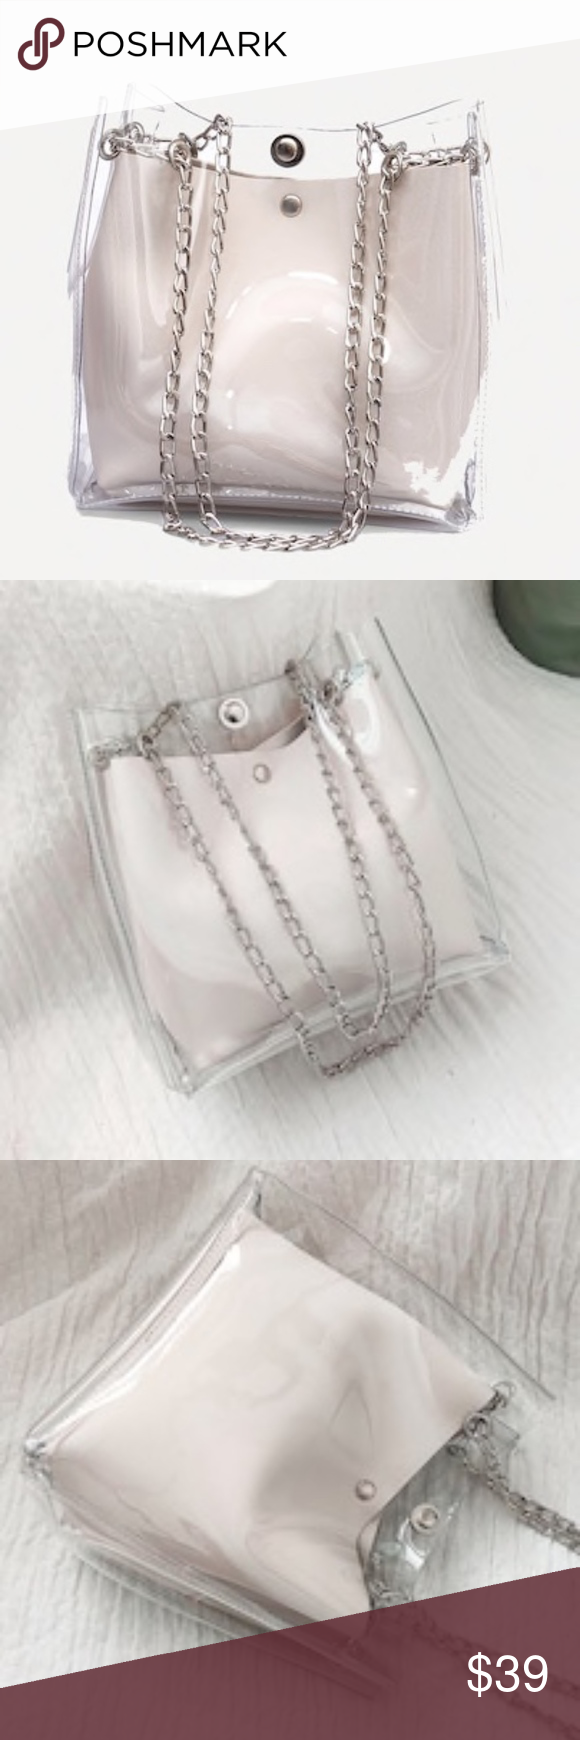 Clear Chain Tote Bag with Inner Removable Pouch SUPER CUTE!! Clear Chain Tote with Vegan Faux Leather Removable Pouch!! Great for Concerts, Stadium/Arena Games or a Night/Day Outing!! Magnetic Closure Color: Clear w/Off White Pouch, Silver Chain Strap Strap: Chain Bag Size: 12W x 8 1/4 H x 4 1/2 D Pouch Size: 10W x 7 1/4H x 3D Handle Length: 8 Emma Bags Totes #chainbags